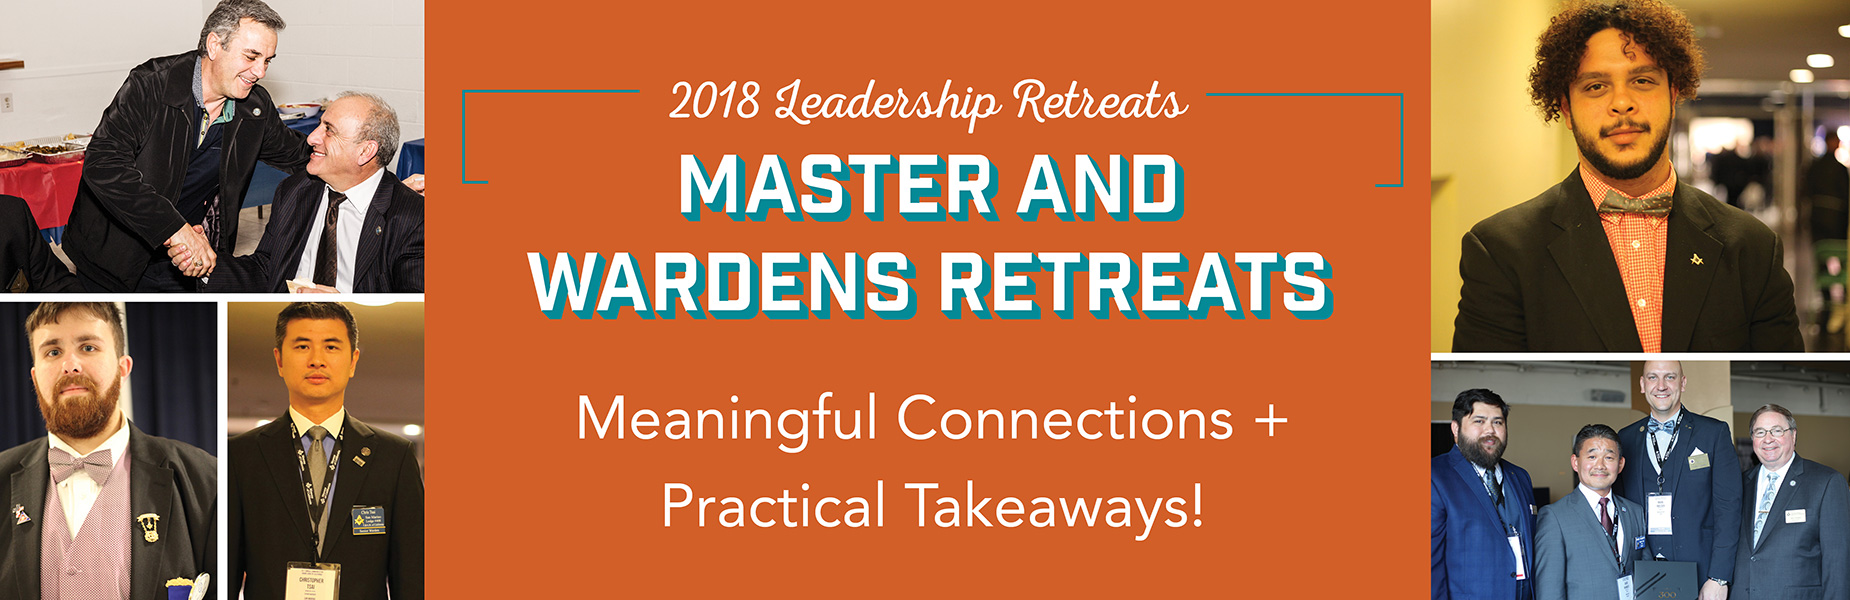 2018 Master and Wardens Retreat